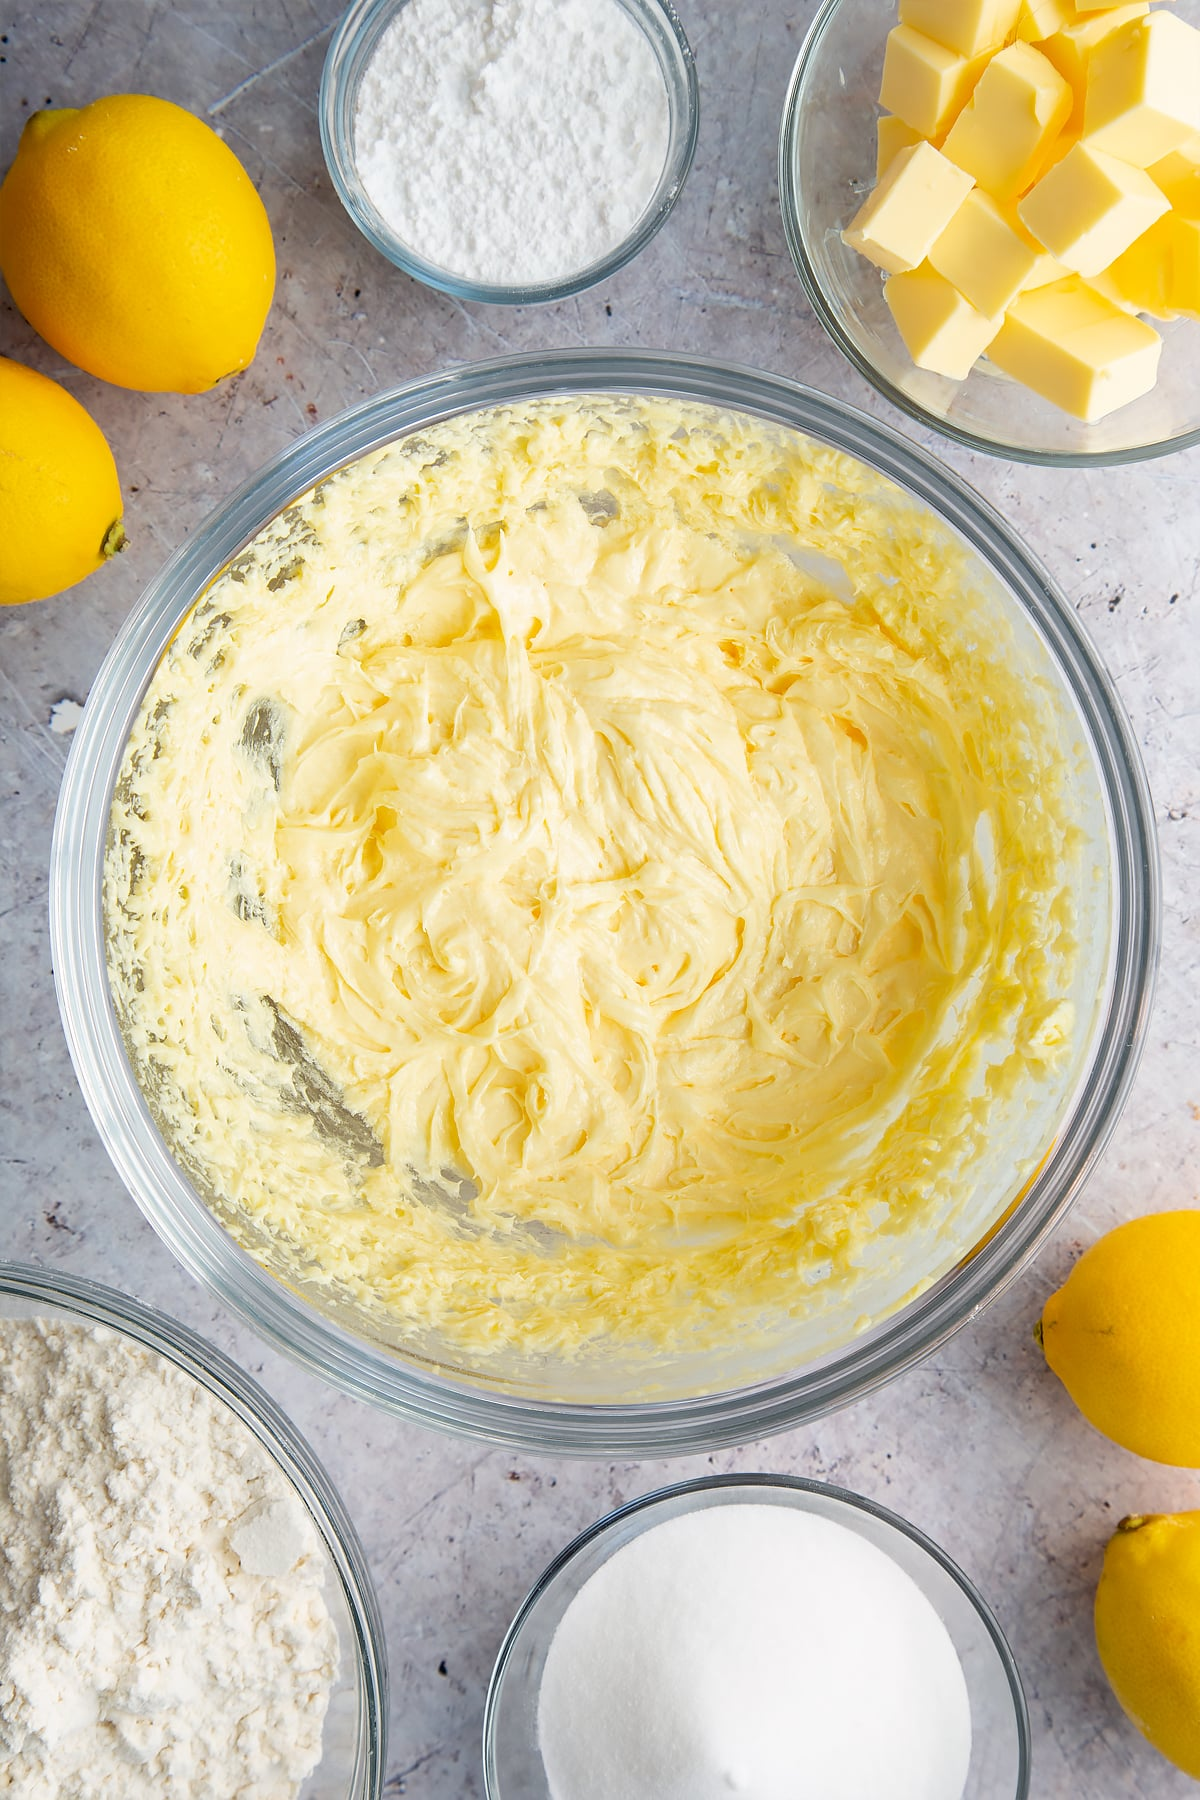 Butter, sugar and eggs creamed together in a glass bowl. Ingredients to make lemon drizzle cake surround the bowl.